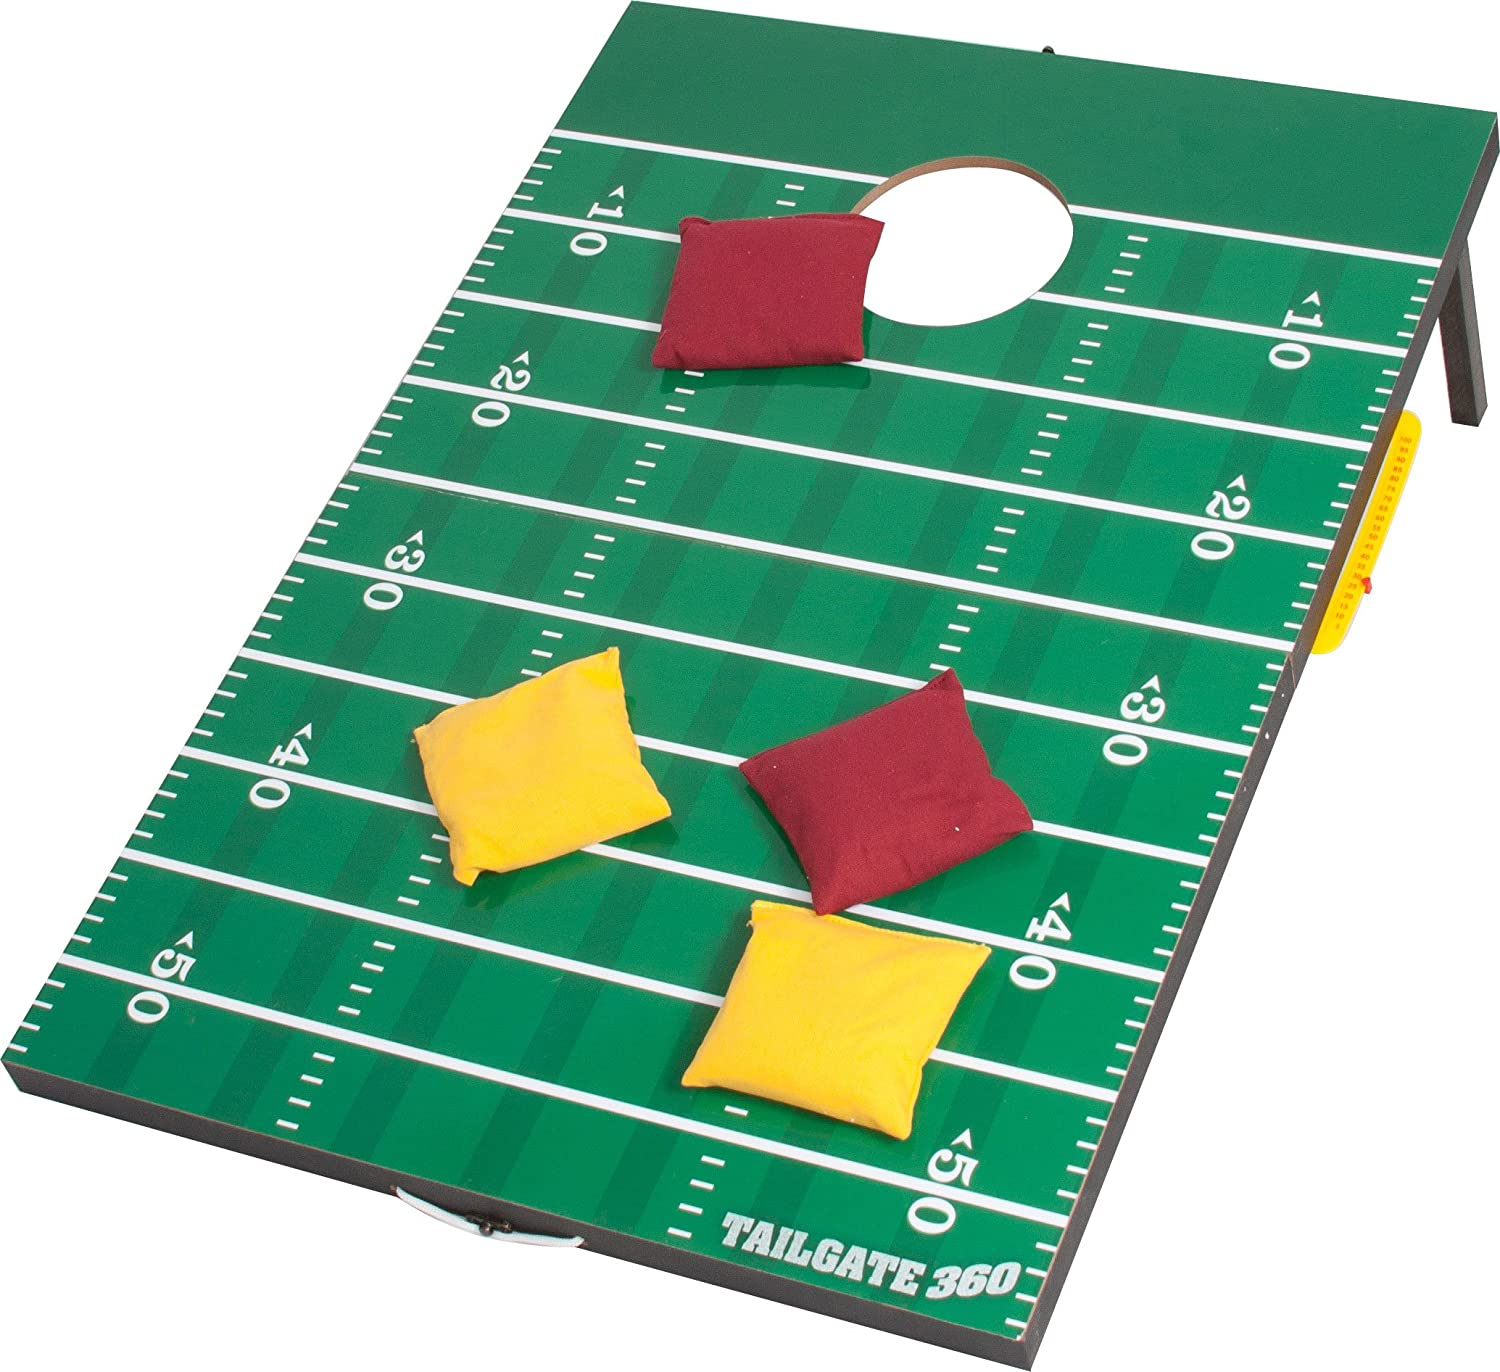 Amazon.com: Tailgate 360 Football Bean Bag Toss And Corn Hole Toss Set   Portable With Score Counter And Carrying Handles: Sports U0026 Outdoors